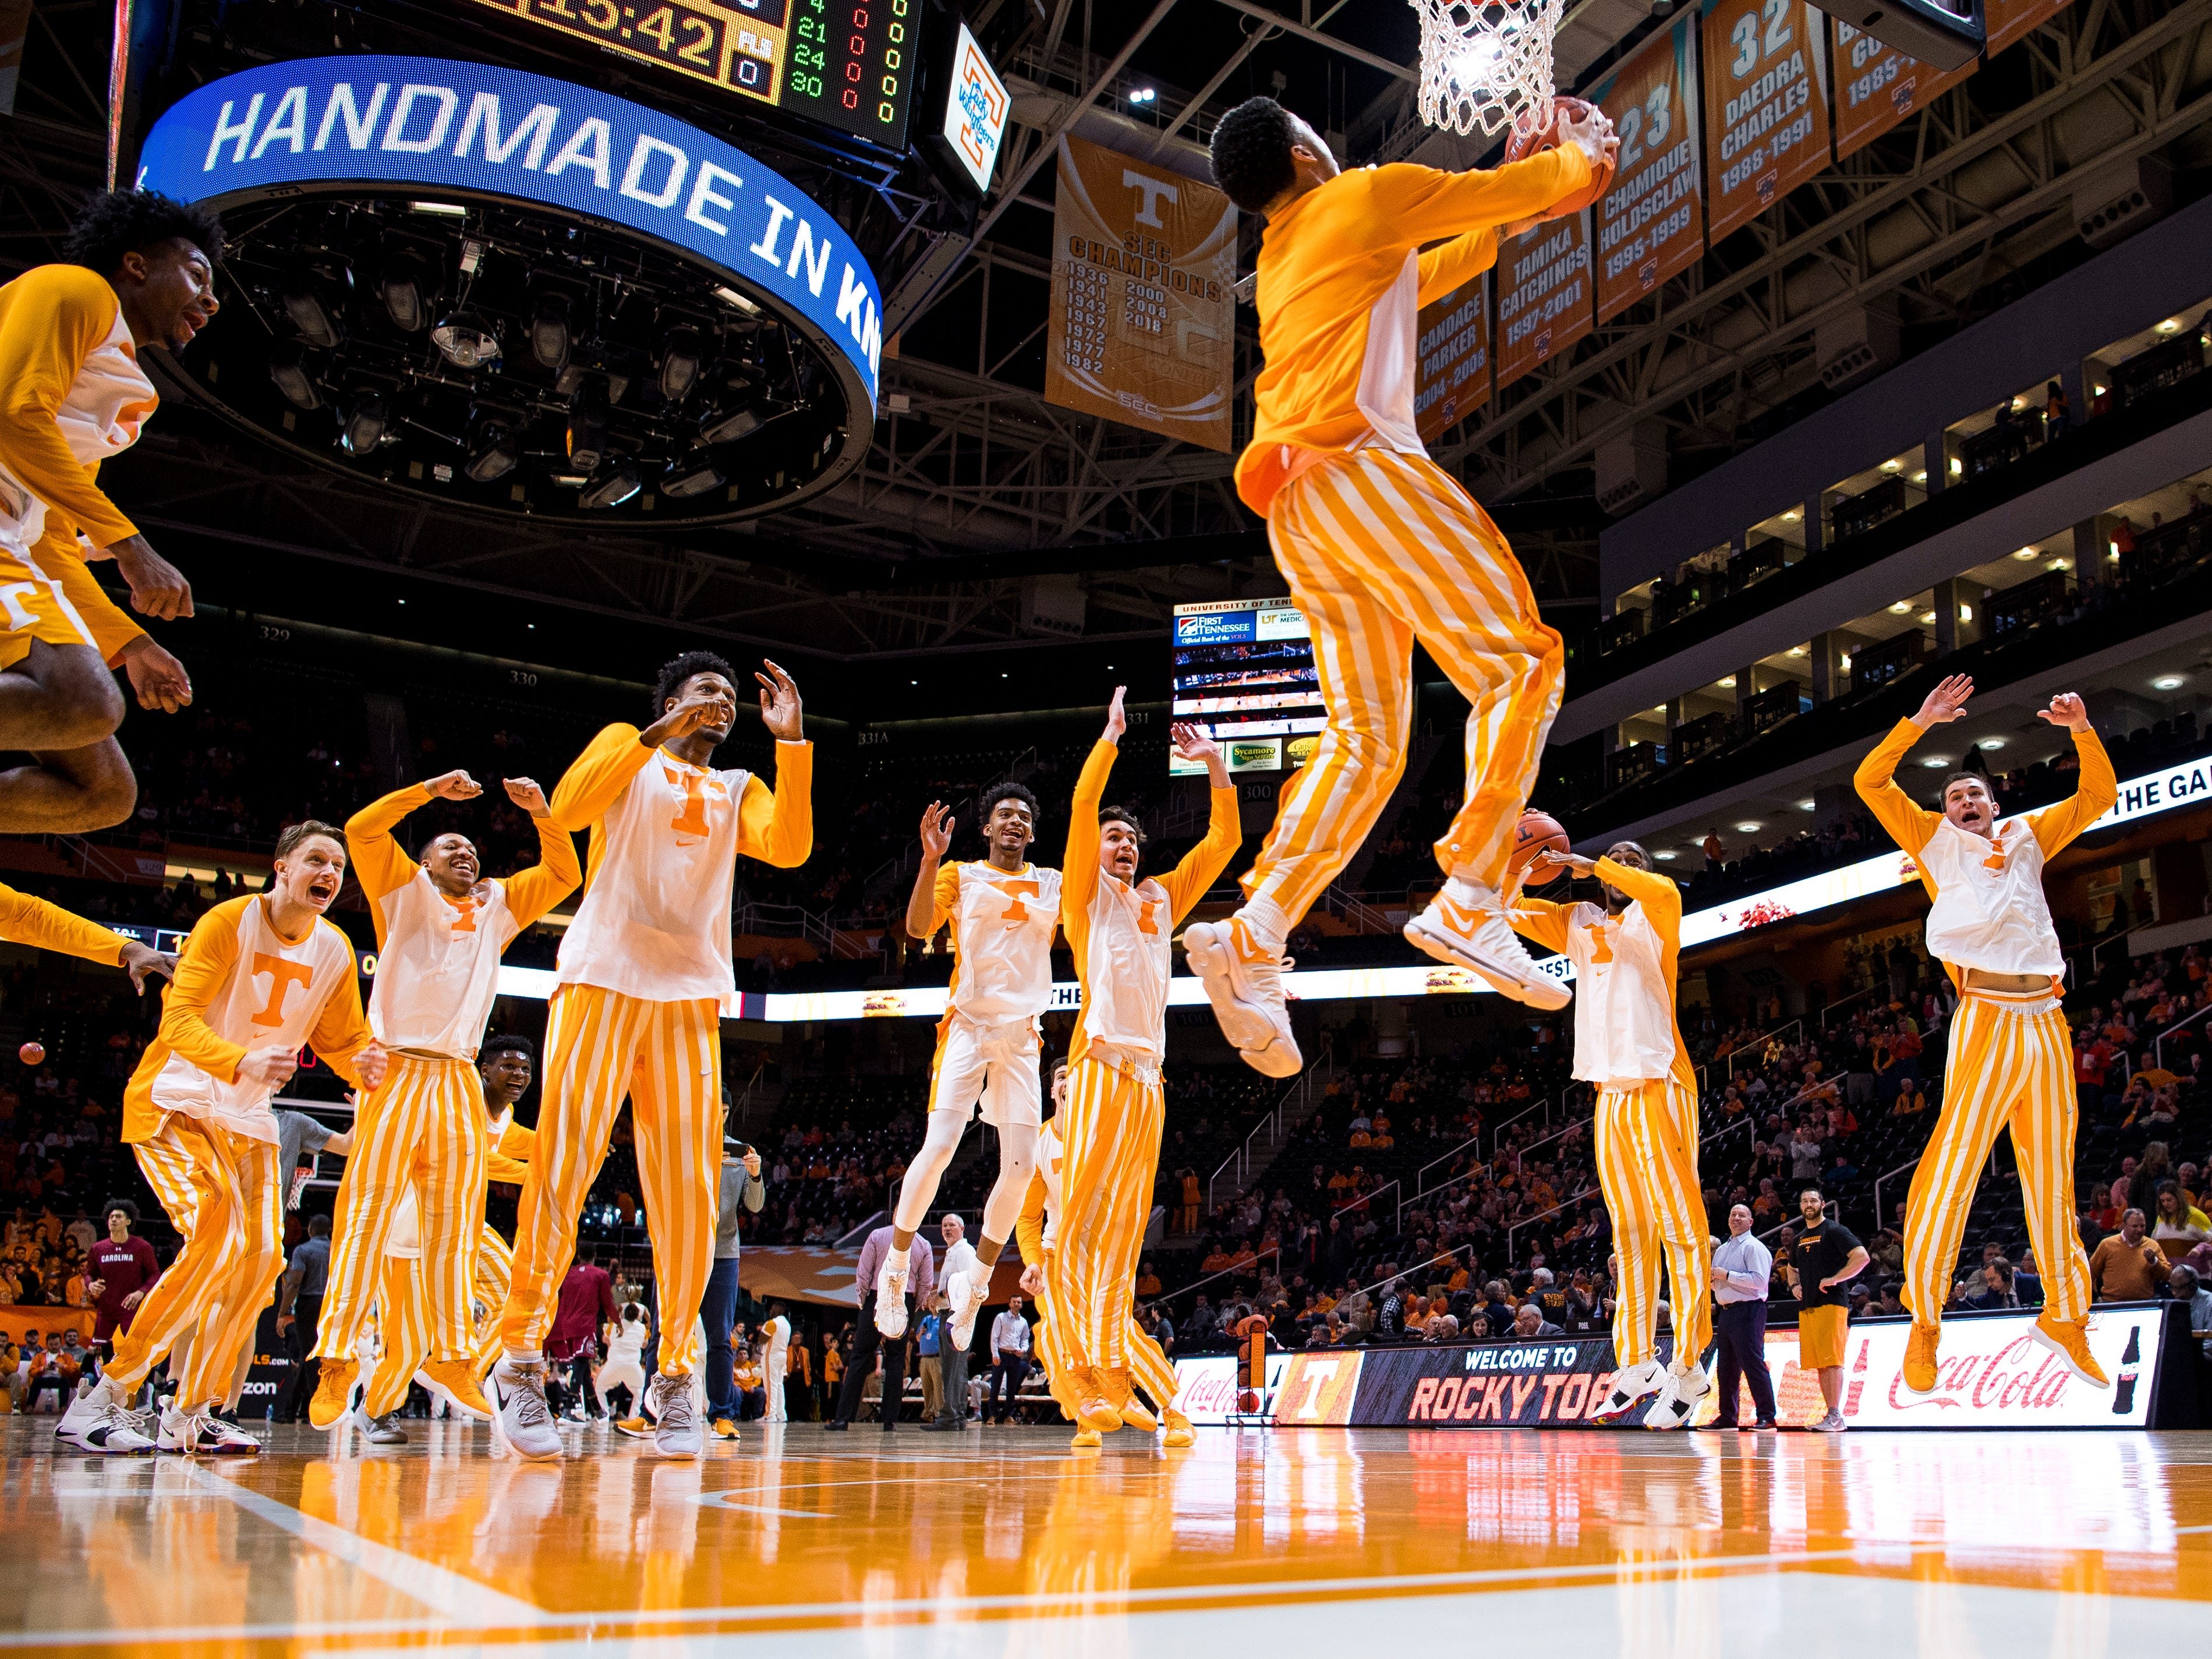 """Tennessee guard Lamonte Turner (1) takes the dunk for the Vols' pregame """"One Fly, We All Fly"""" tradition before Tennessee's home SEC game against South Carolina at Thompson-Boling Arena in Knoxville on Wednesday, February 13, 2019."""